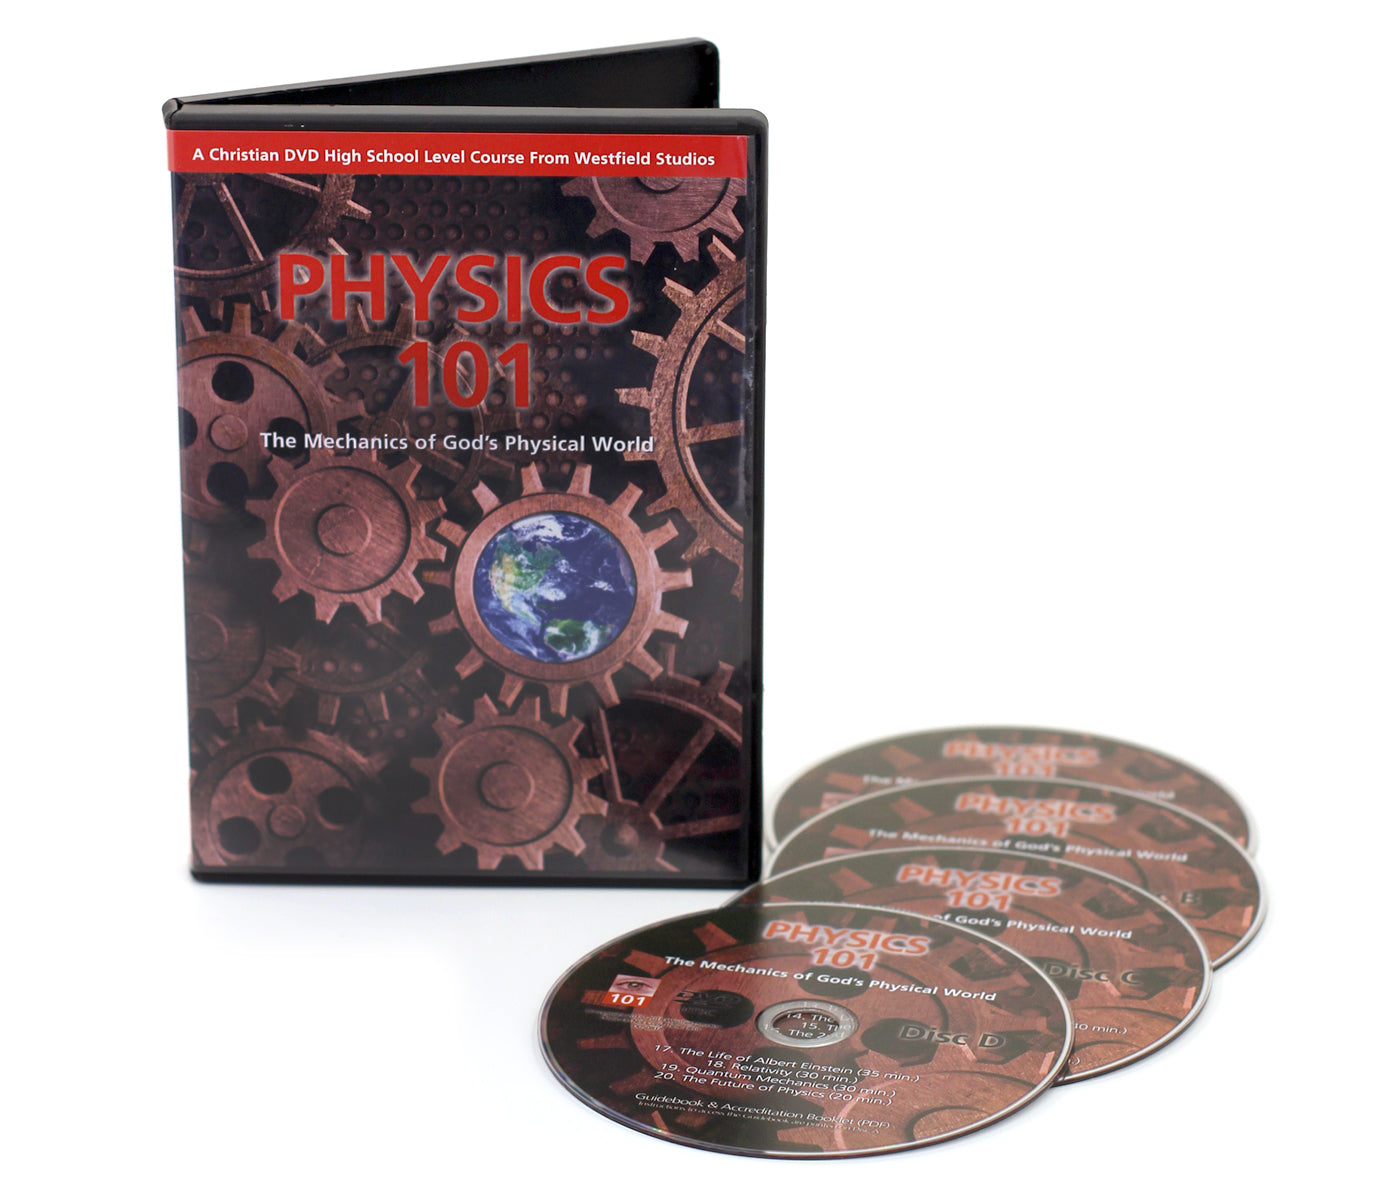 Physics 101 DVD Curriculum